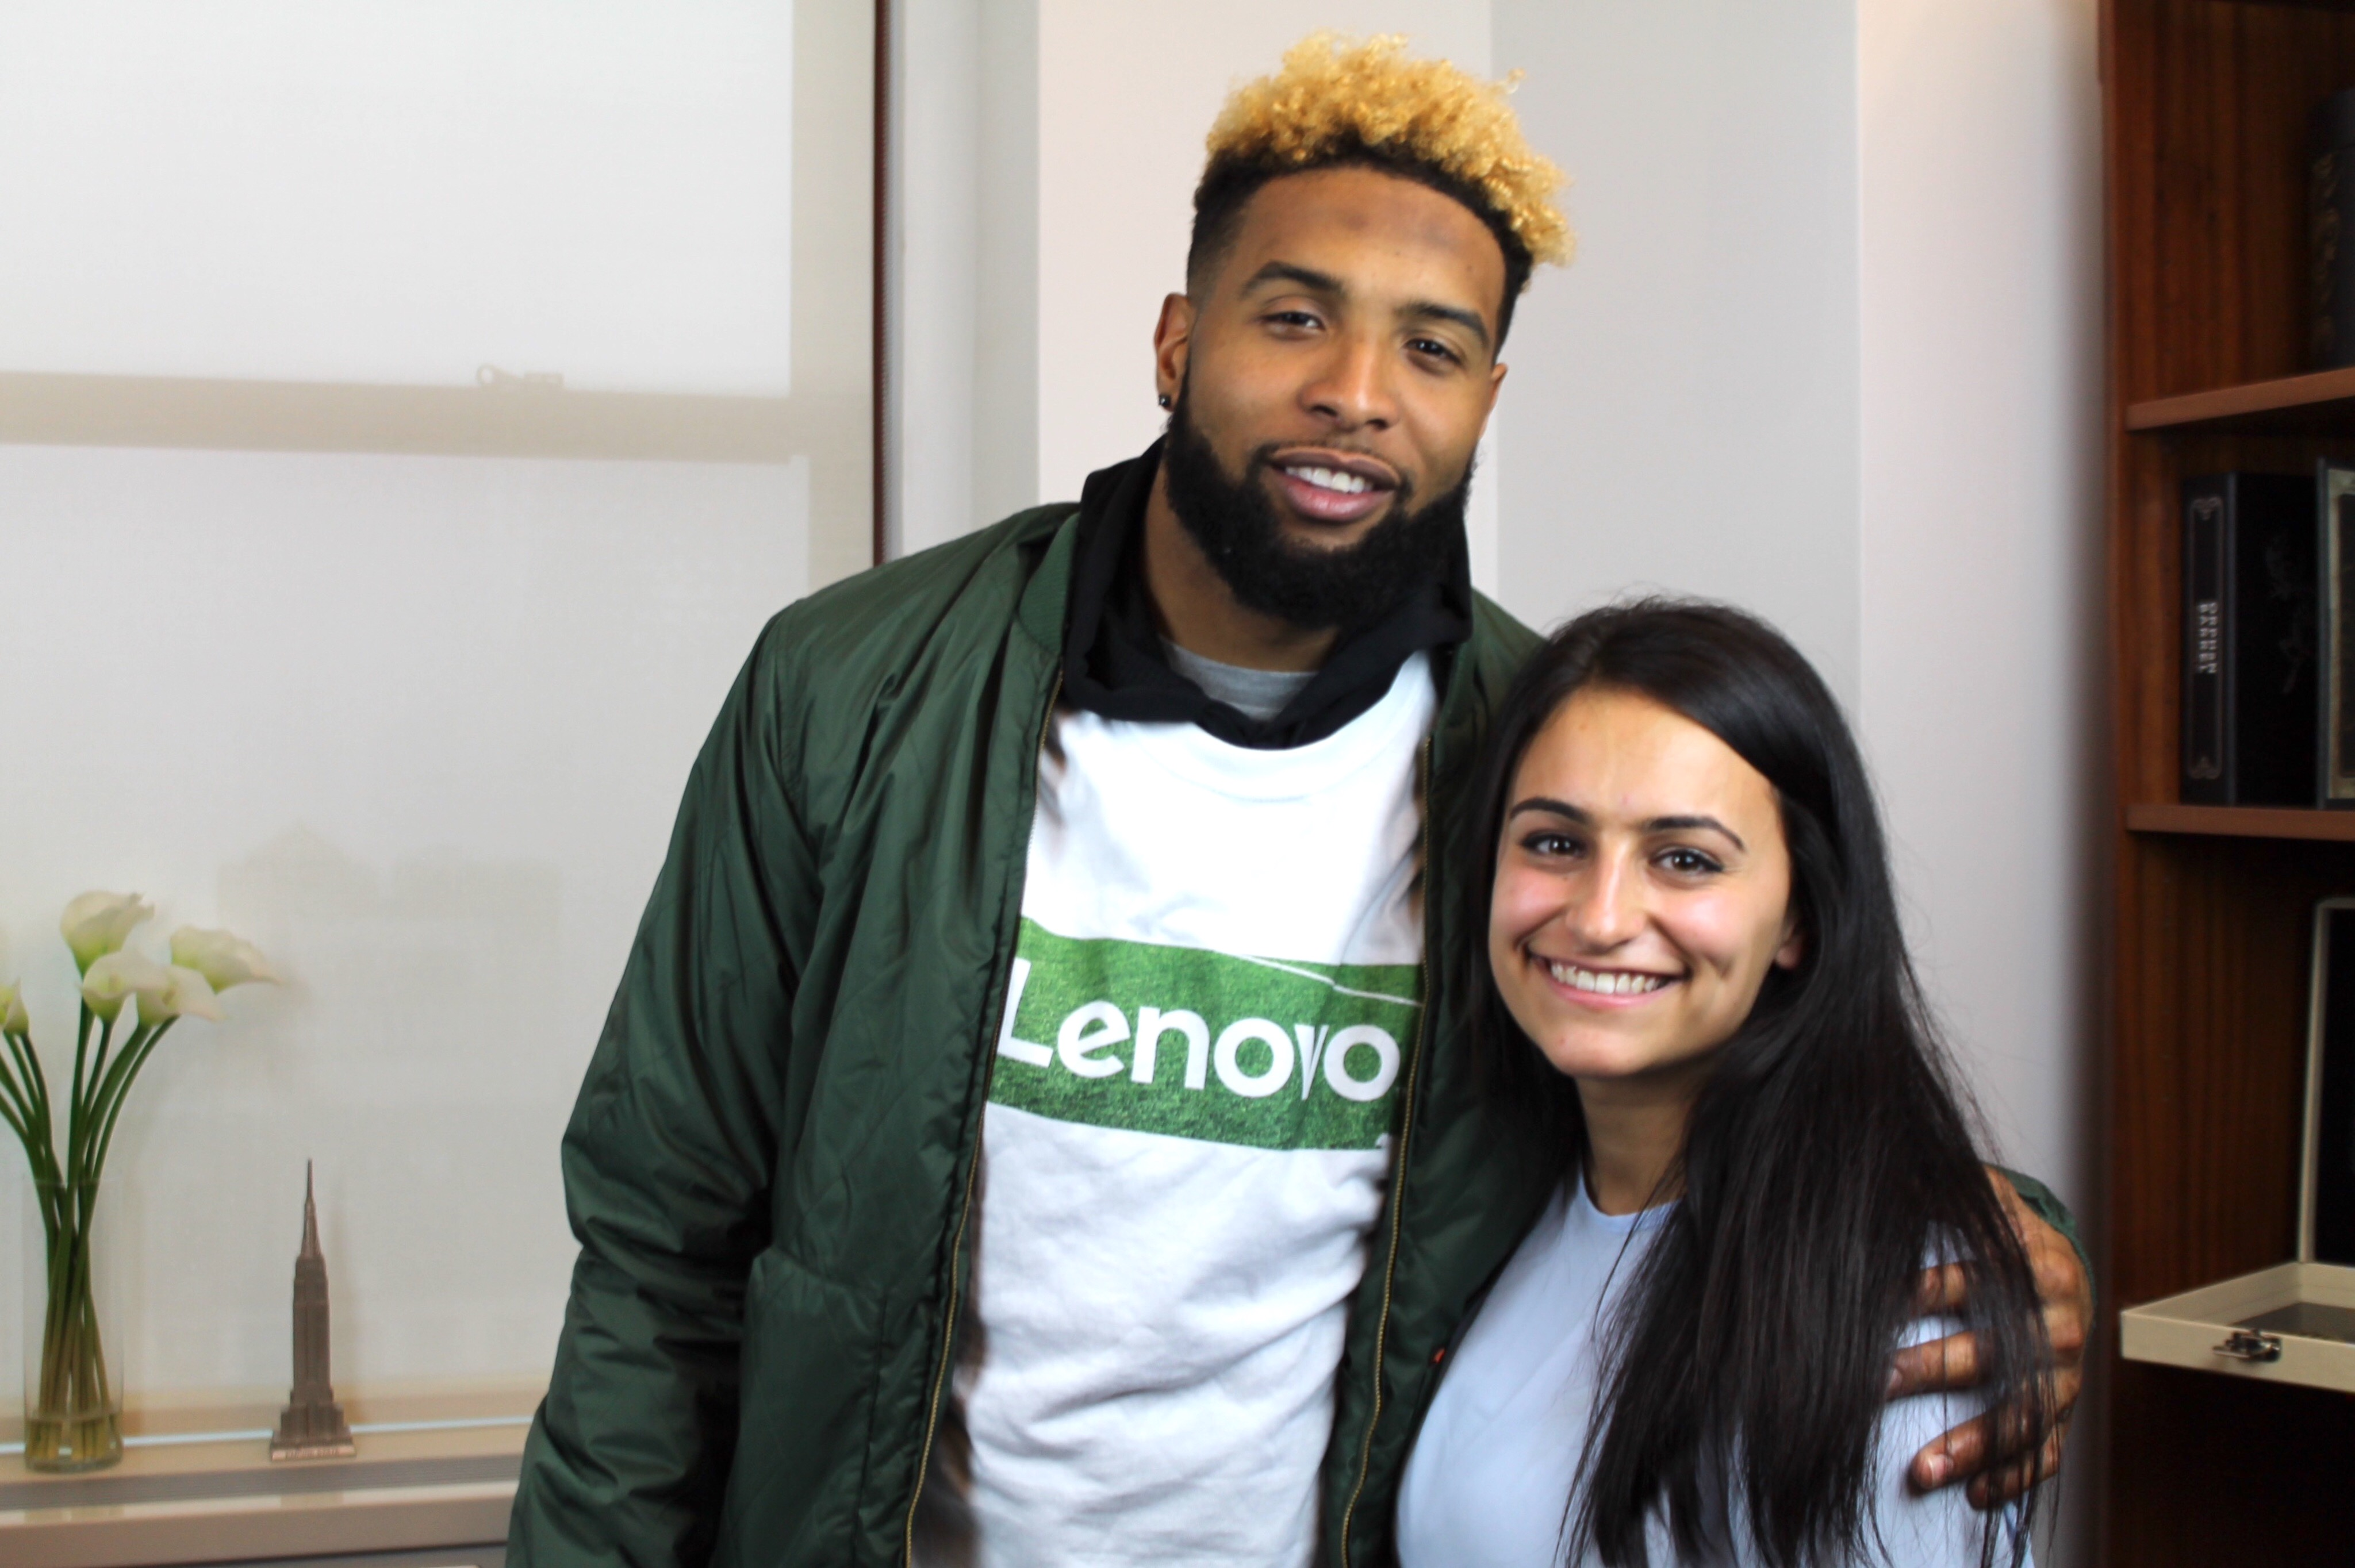 Allison Cozzi with Giants WR Odell Beckham Jr